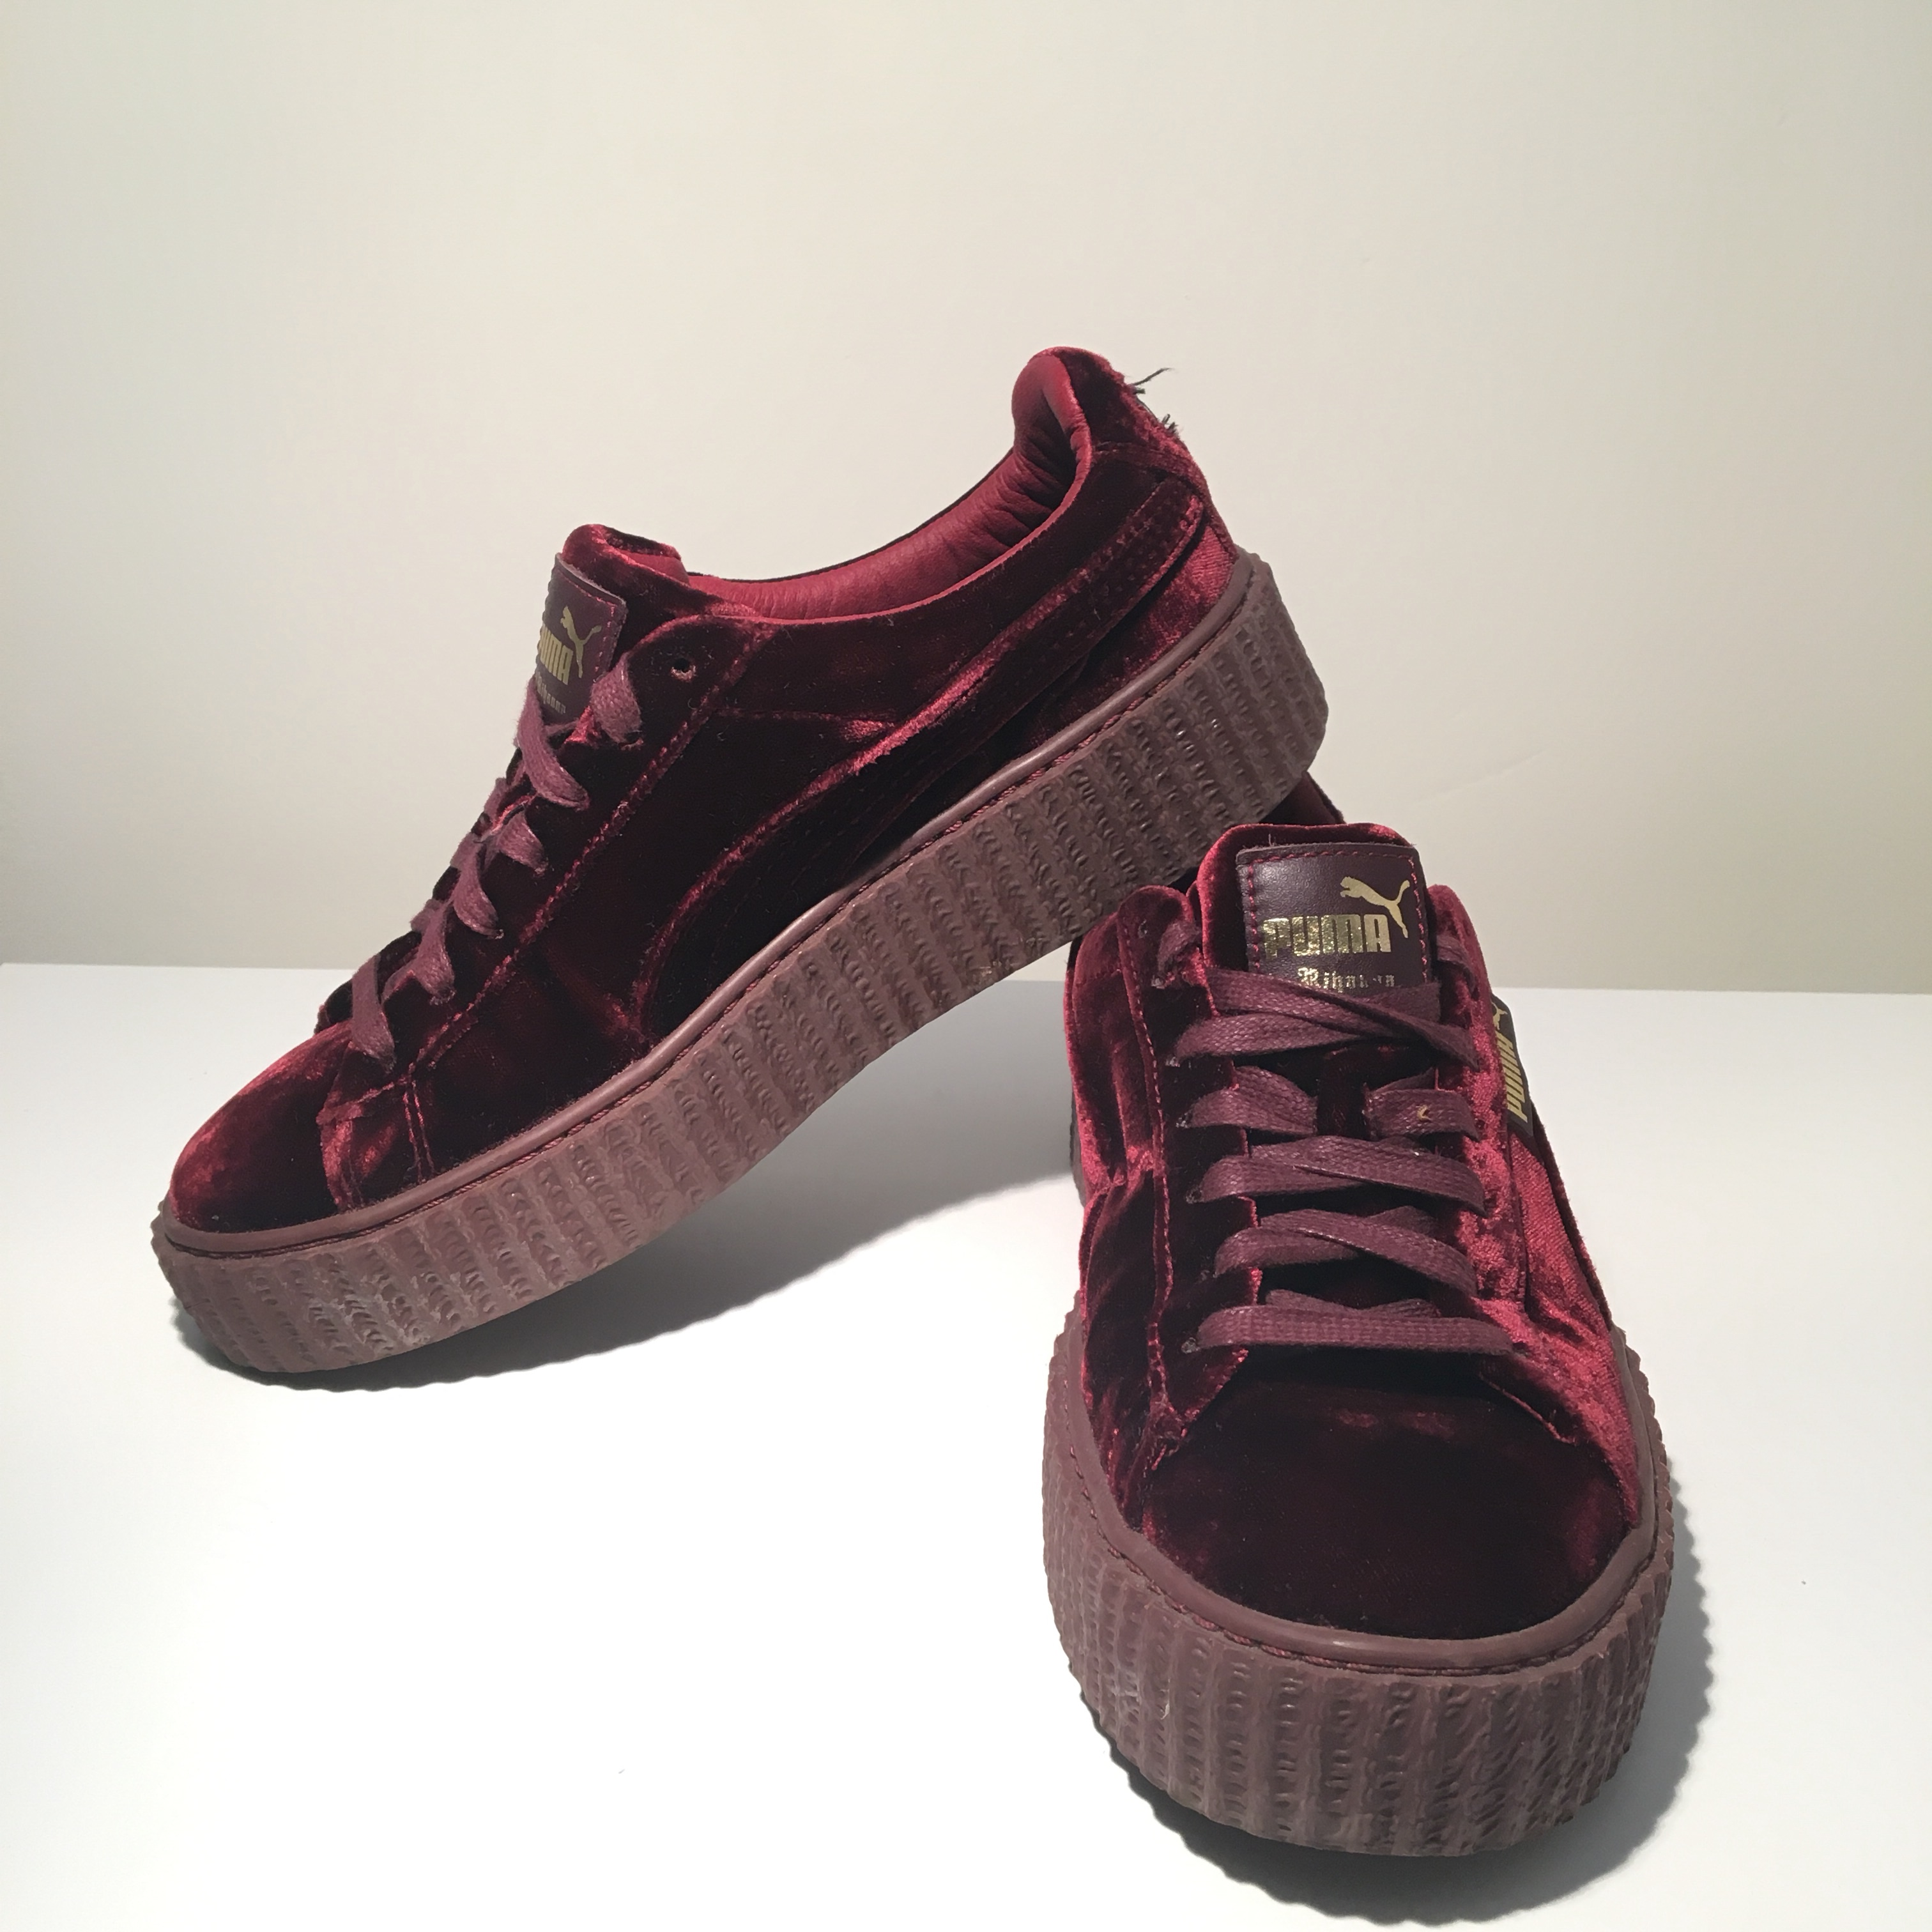 size 40 0c304 7059a Rihanna Fenty Puma Creepers Red Velvet size 7.5... - Depop